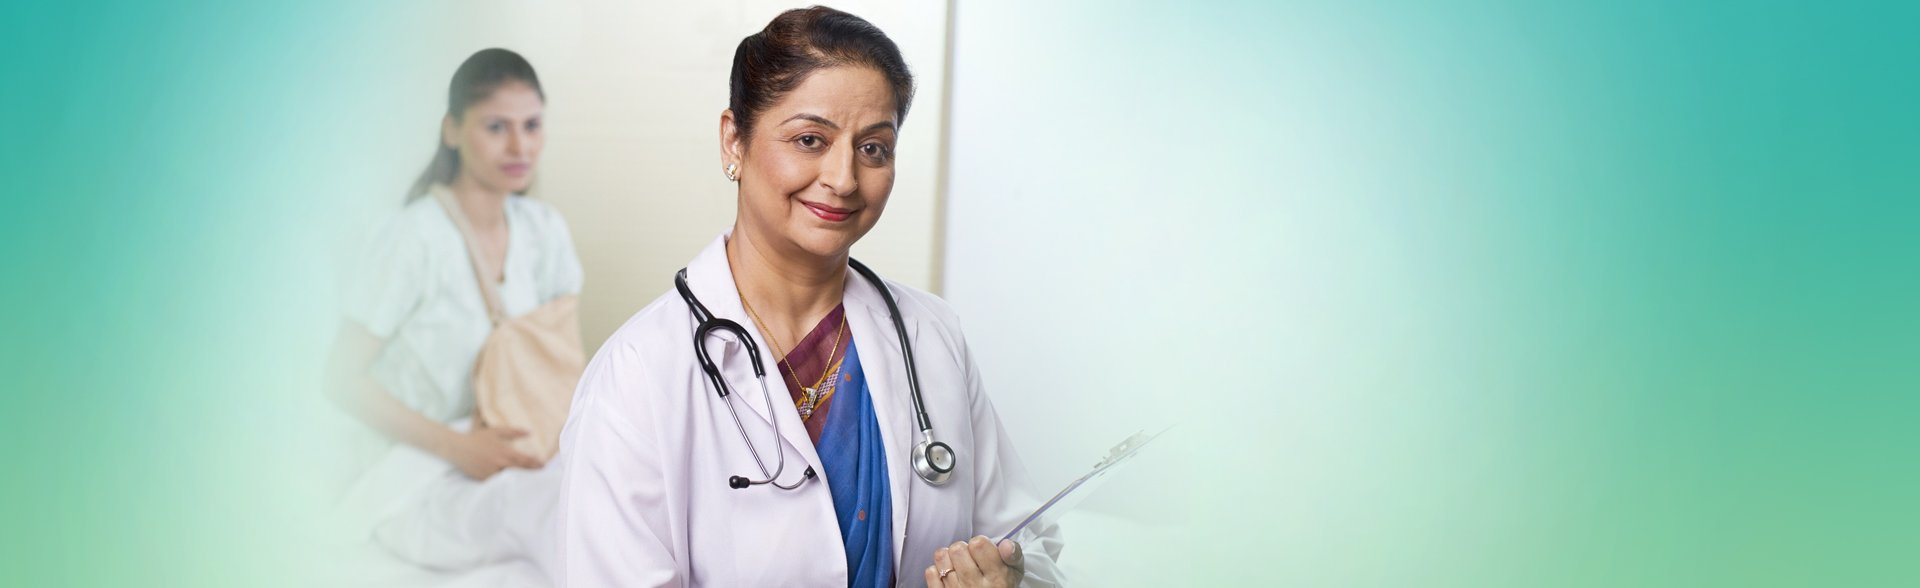 Home Nursing Care Physiotherapy Visit Doctor At